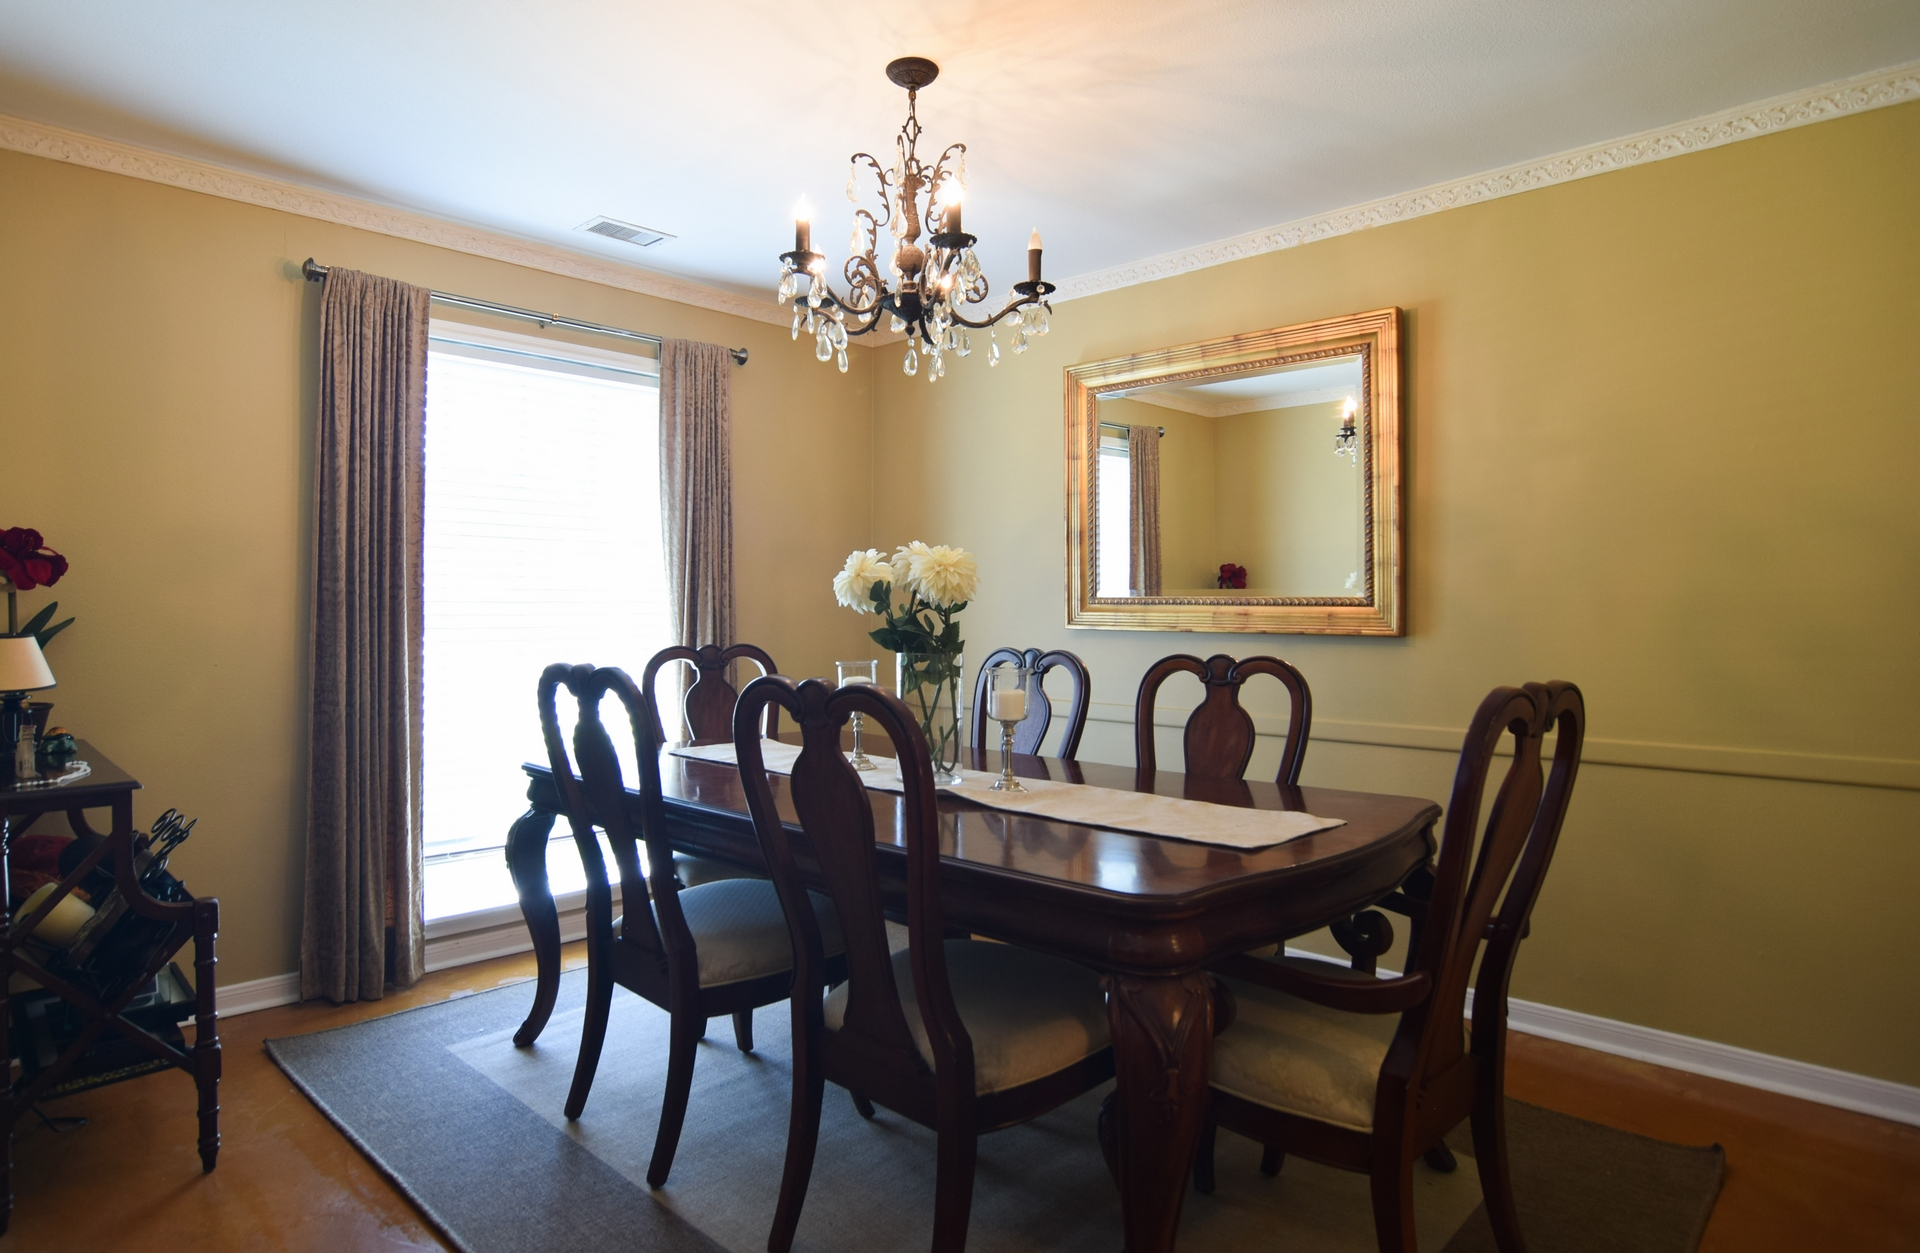 Dining Room 10020 Harwich Dallas TX 75229.jpg